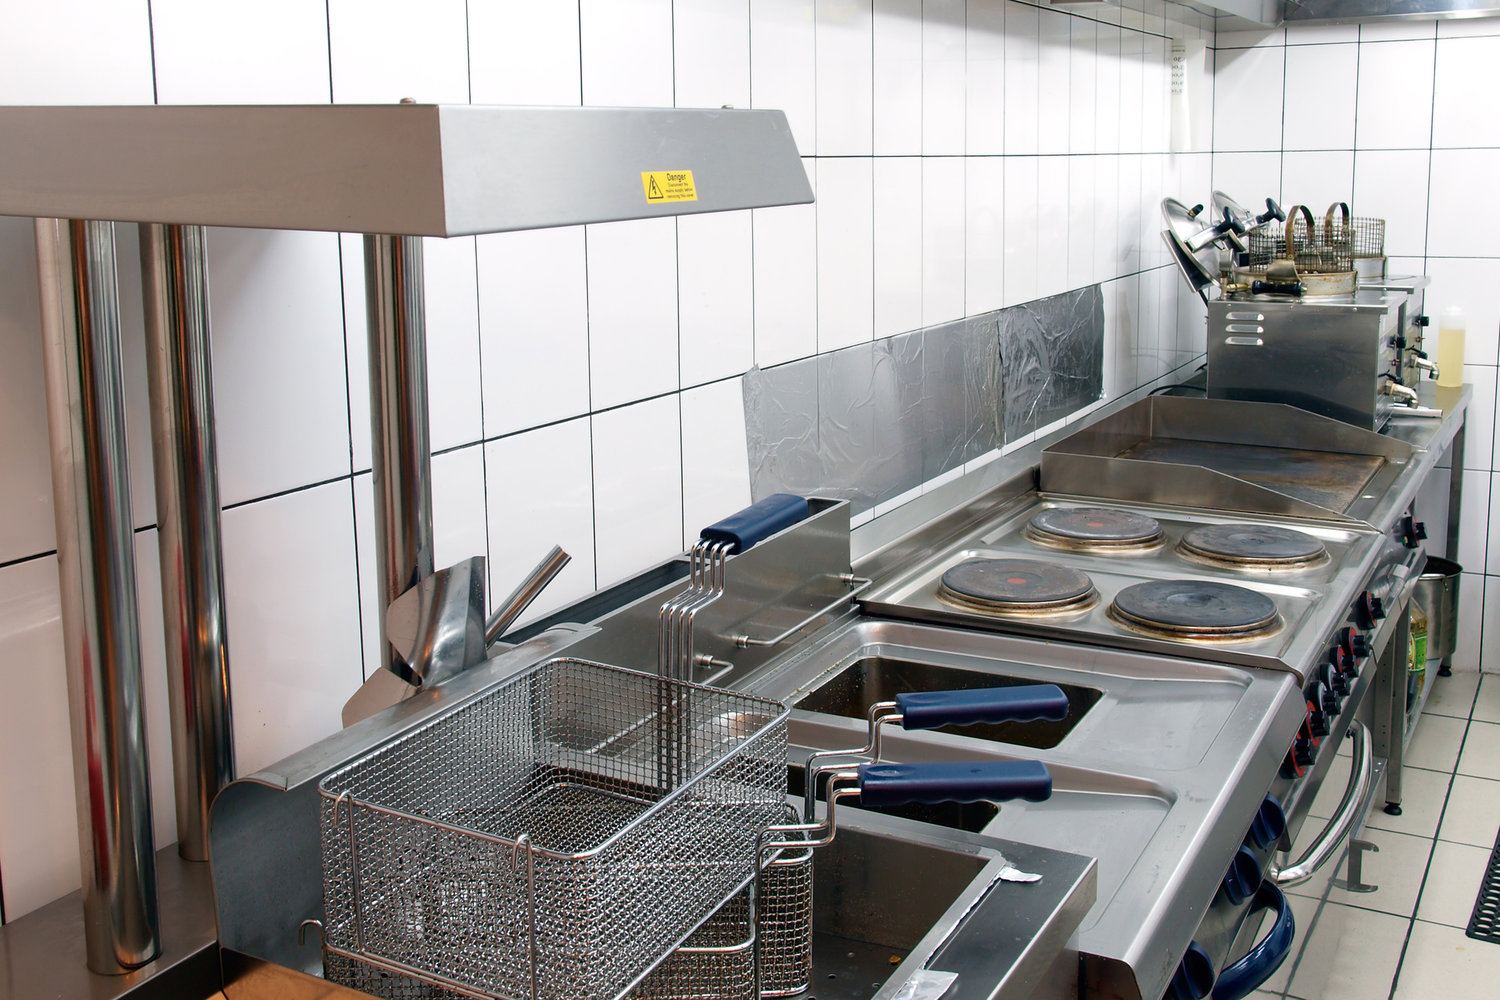 Grease Trap Cleaning & Maintenance Service — Smart Alternative Fuels